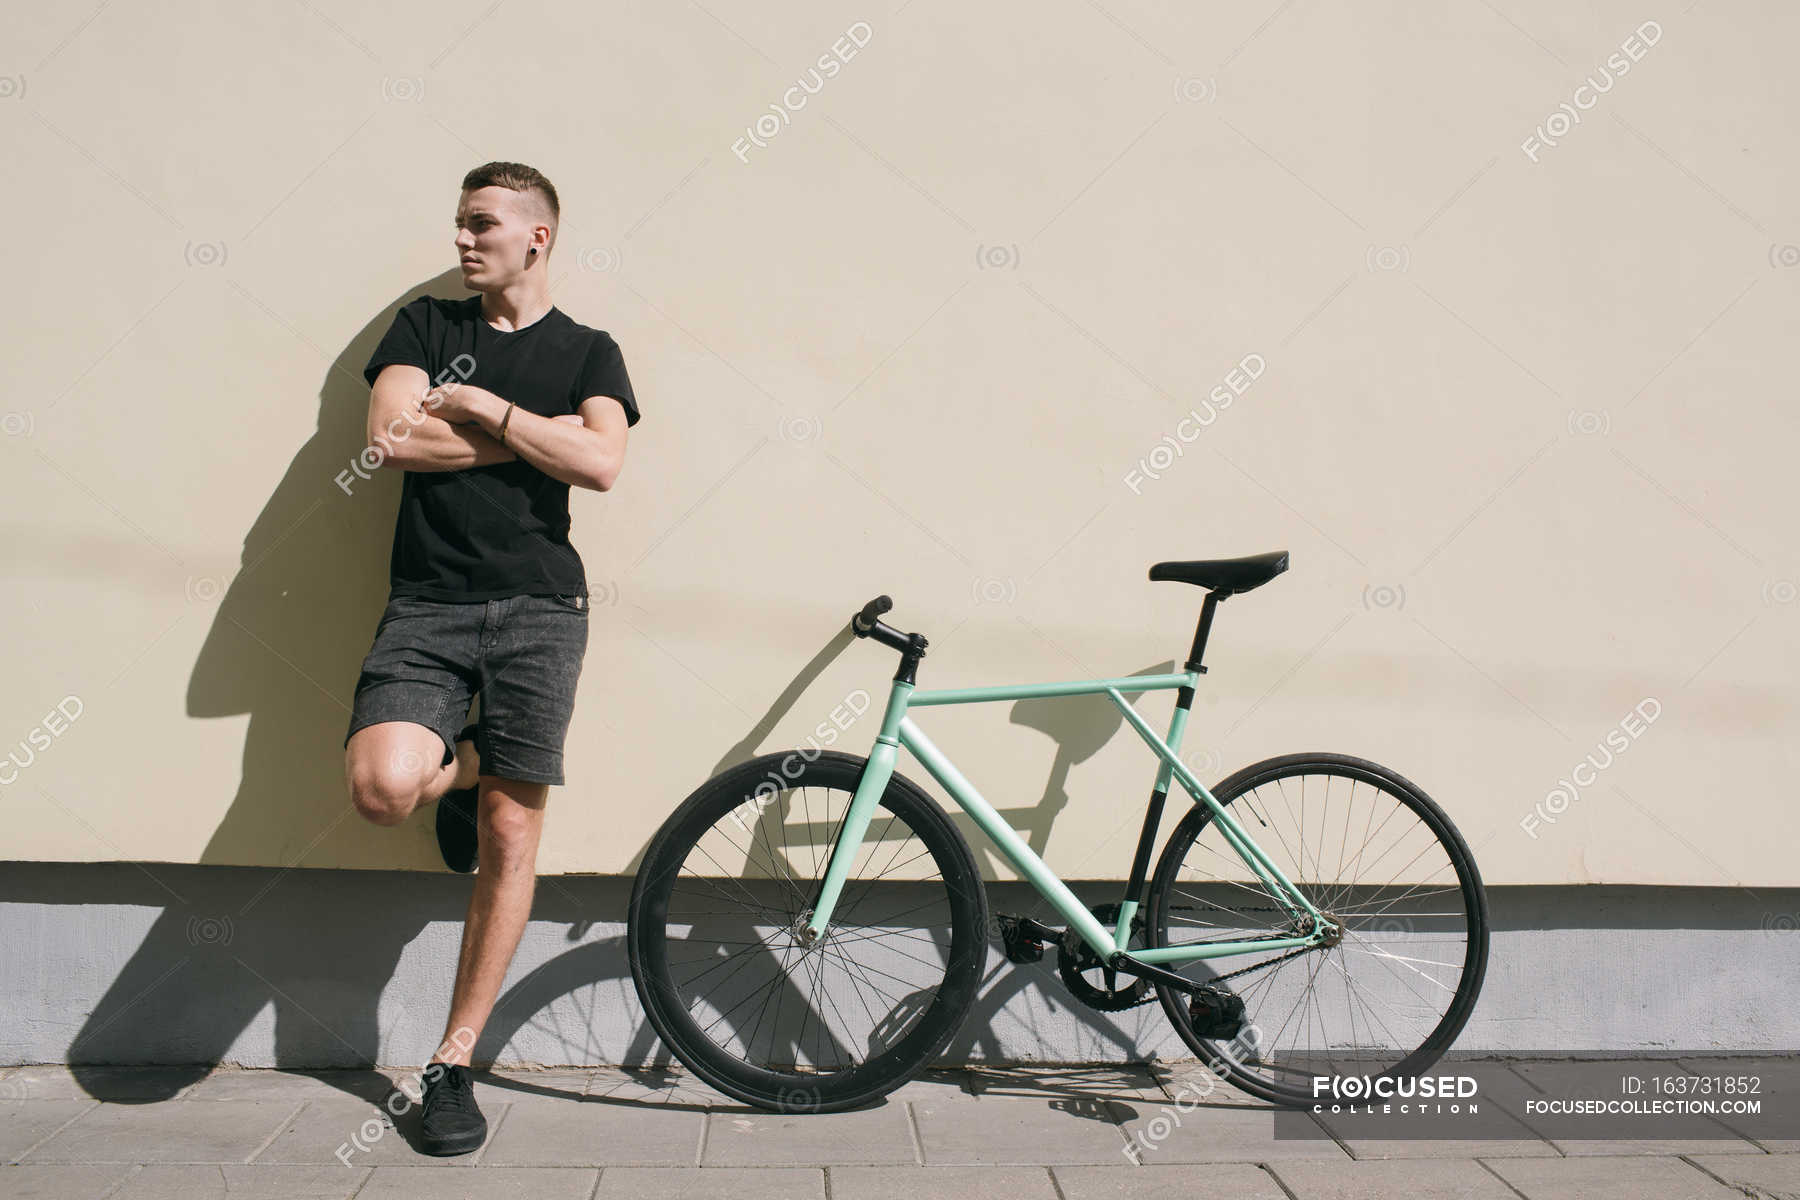 Boy leaning on wal beside bike — Stock Photo | #163731852